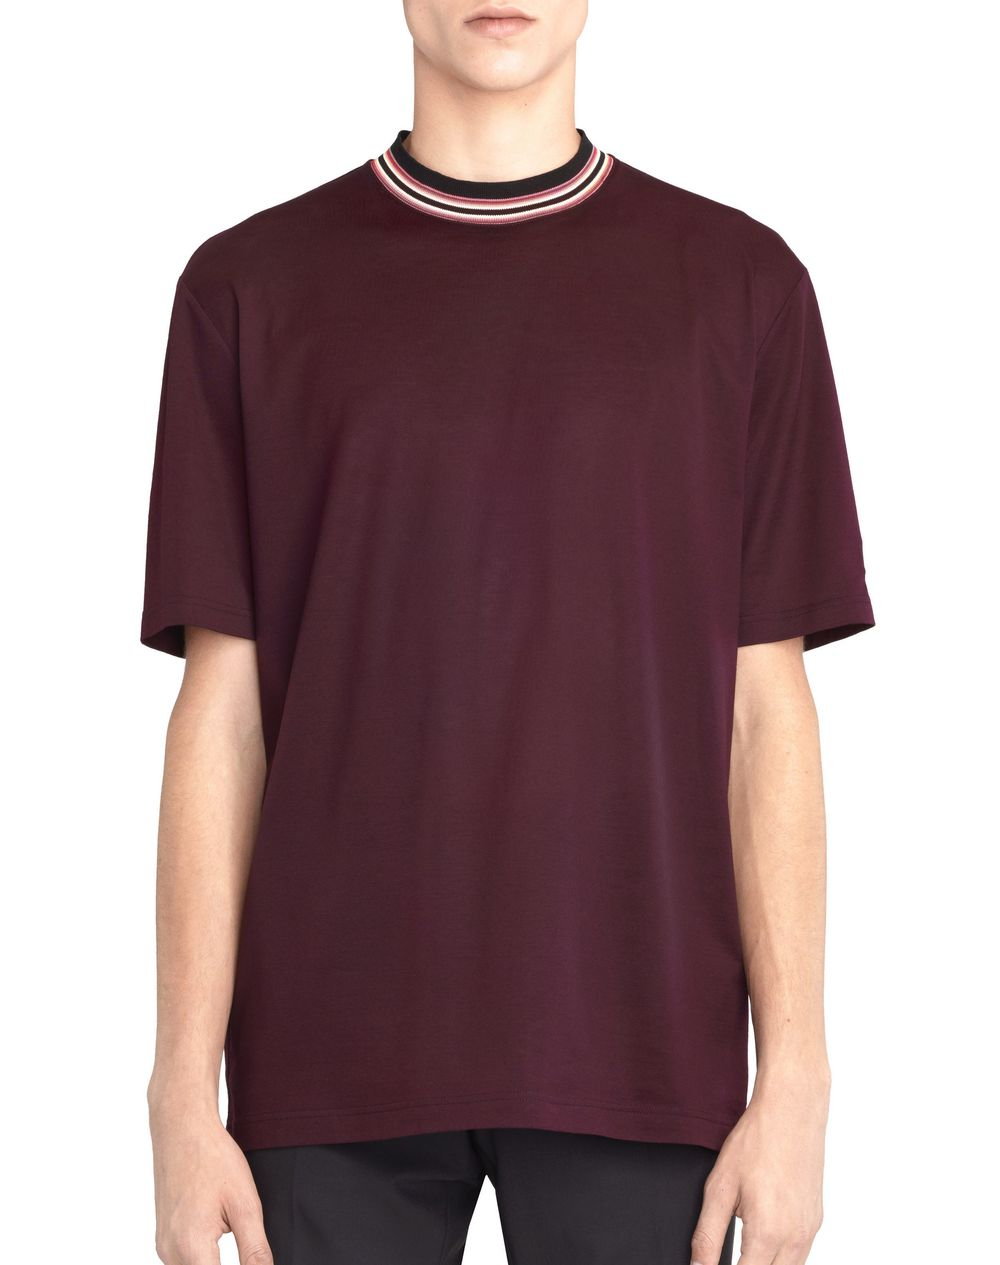 STRIPED COLLAR T-SHIRT - Lanvin